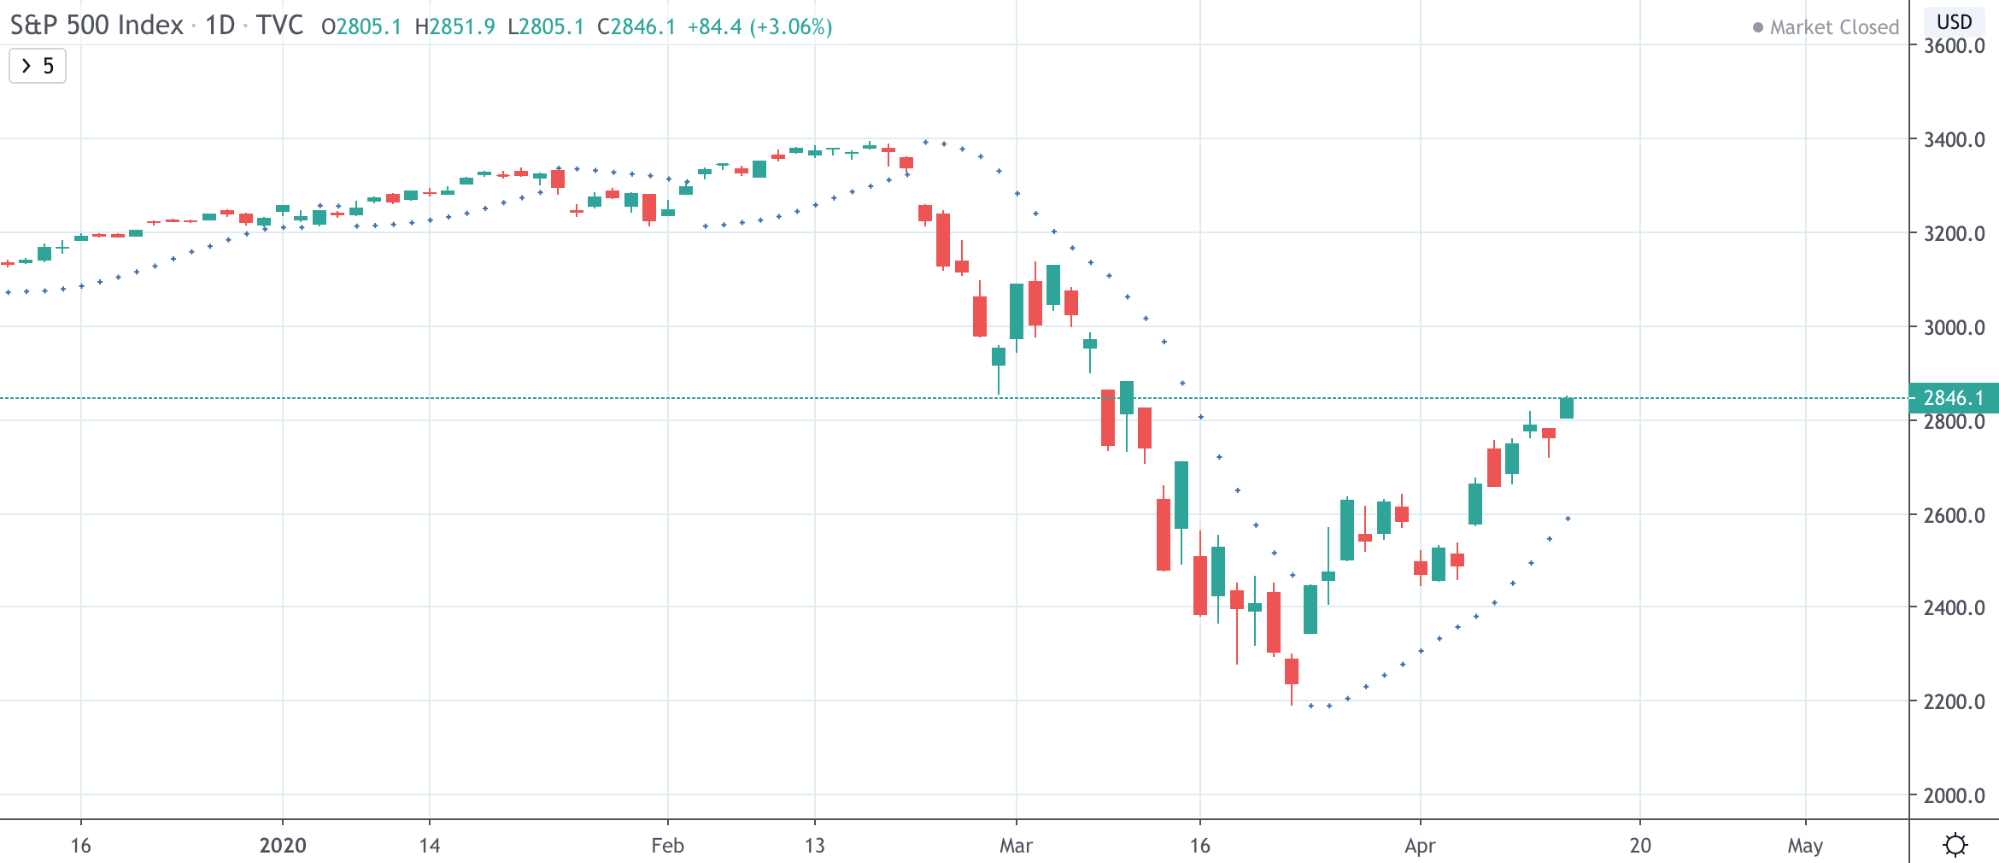 Dow Jones Vs NASDAQ Vs S&P 500: The Differences Traders Need To Know - image16